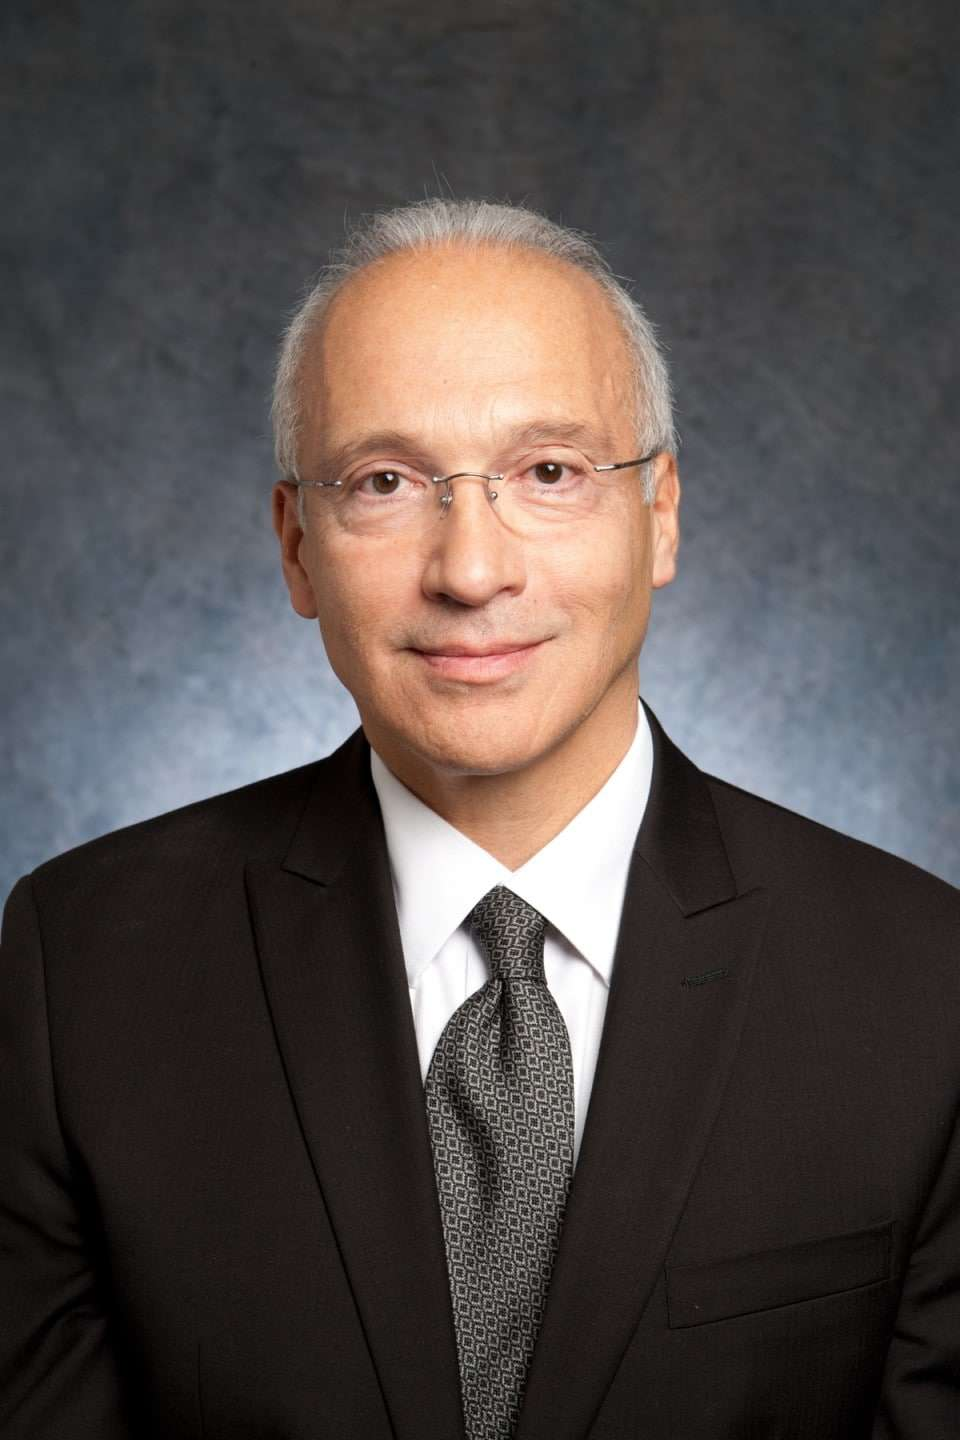 Gonzalo P. Curiel is a U.S. district judge in California overseeing a legal challenge to his now-defunct Trump University.